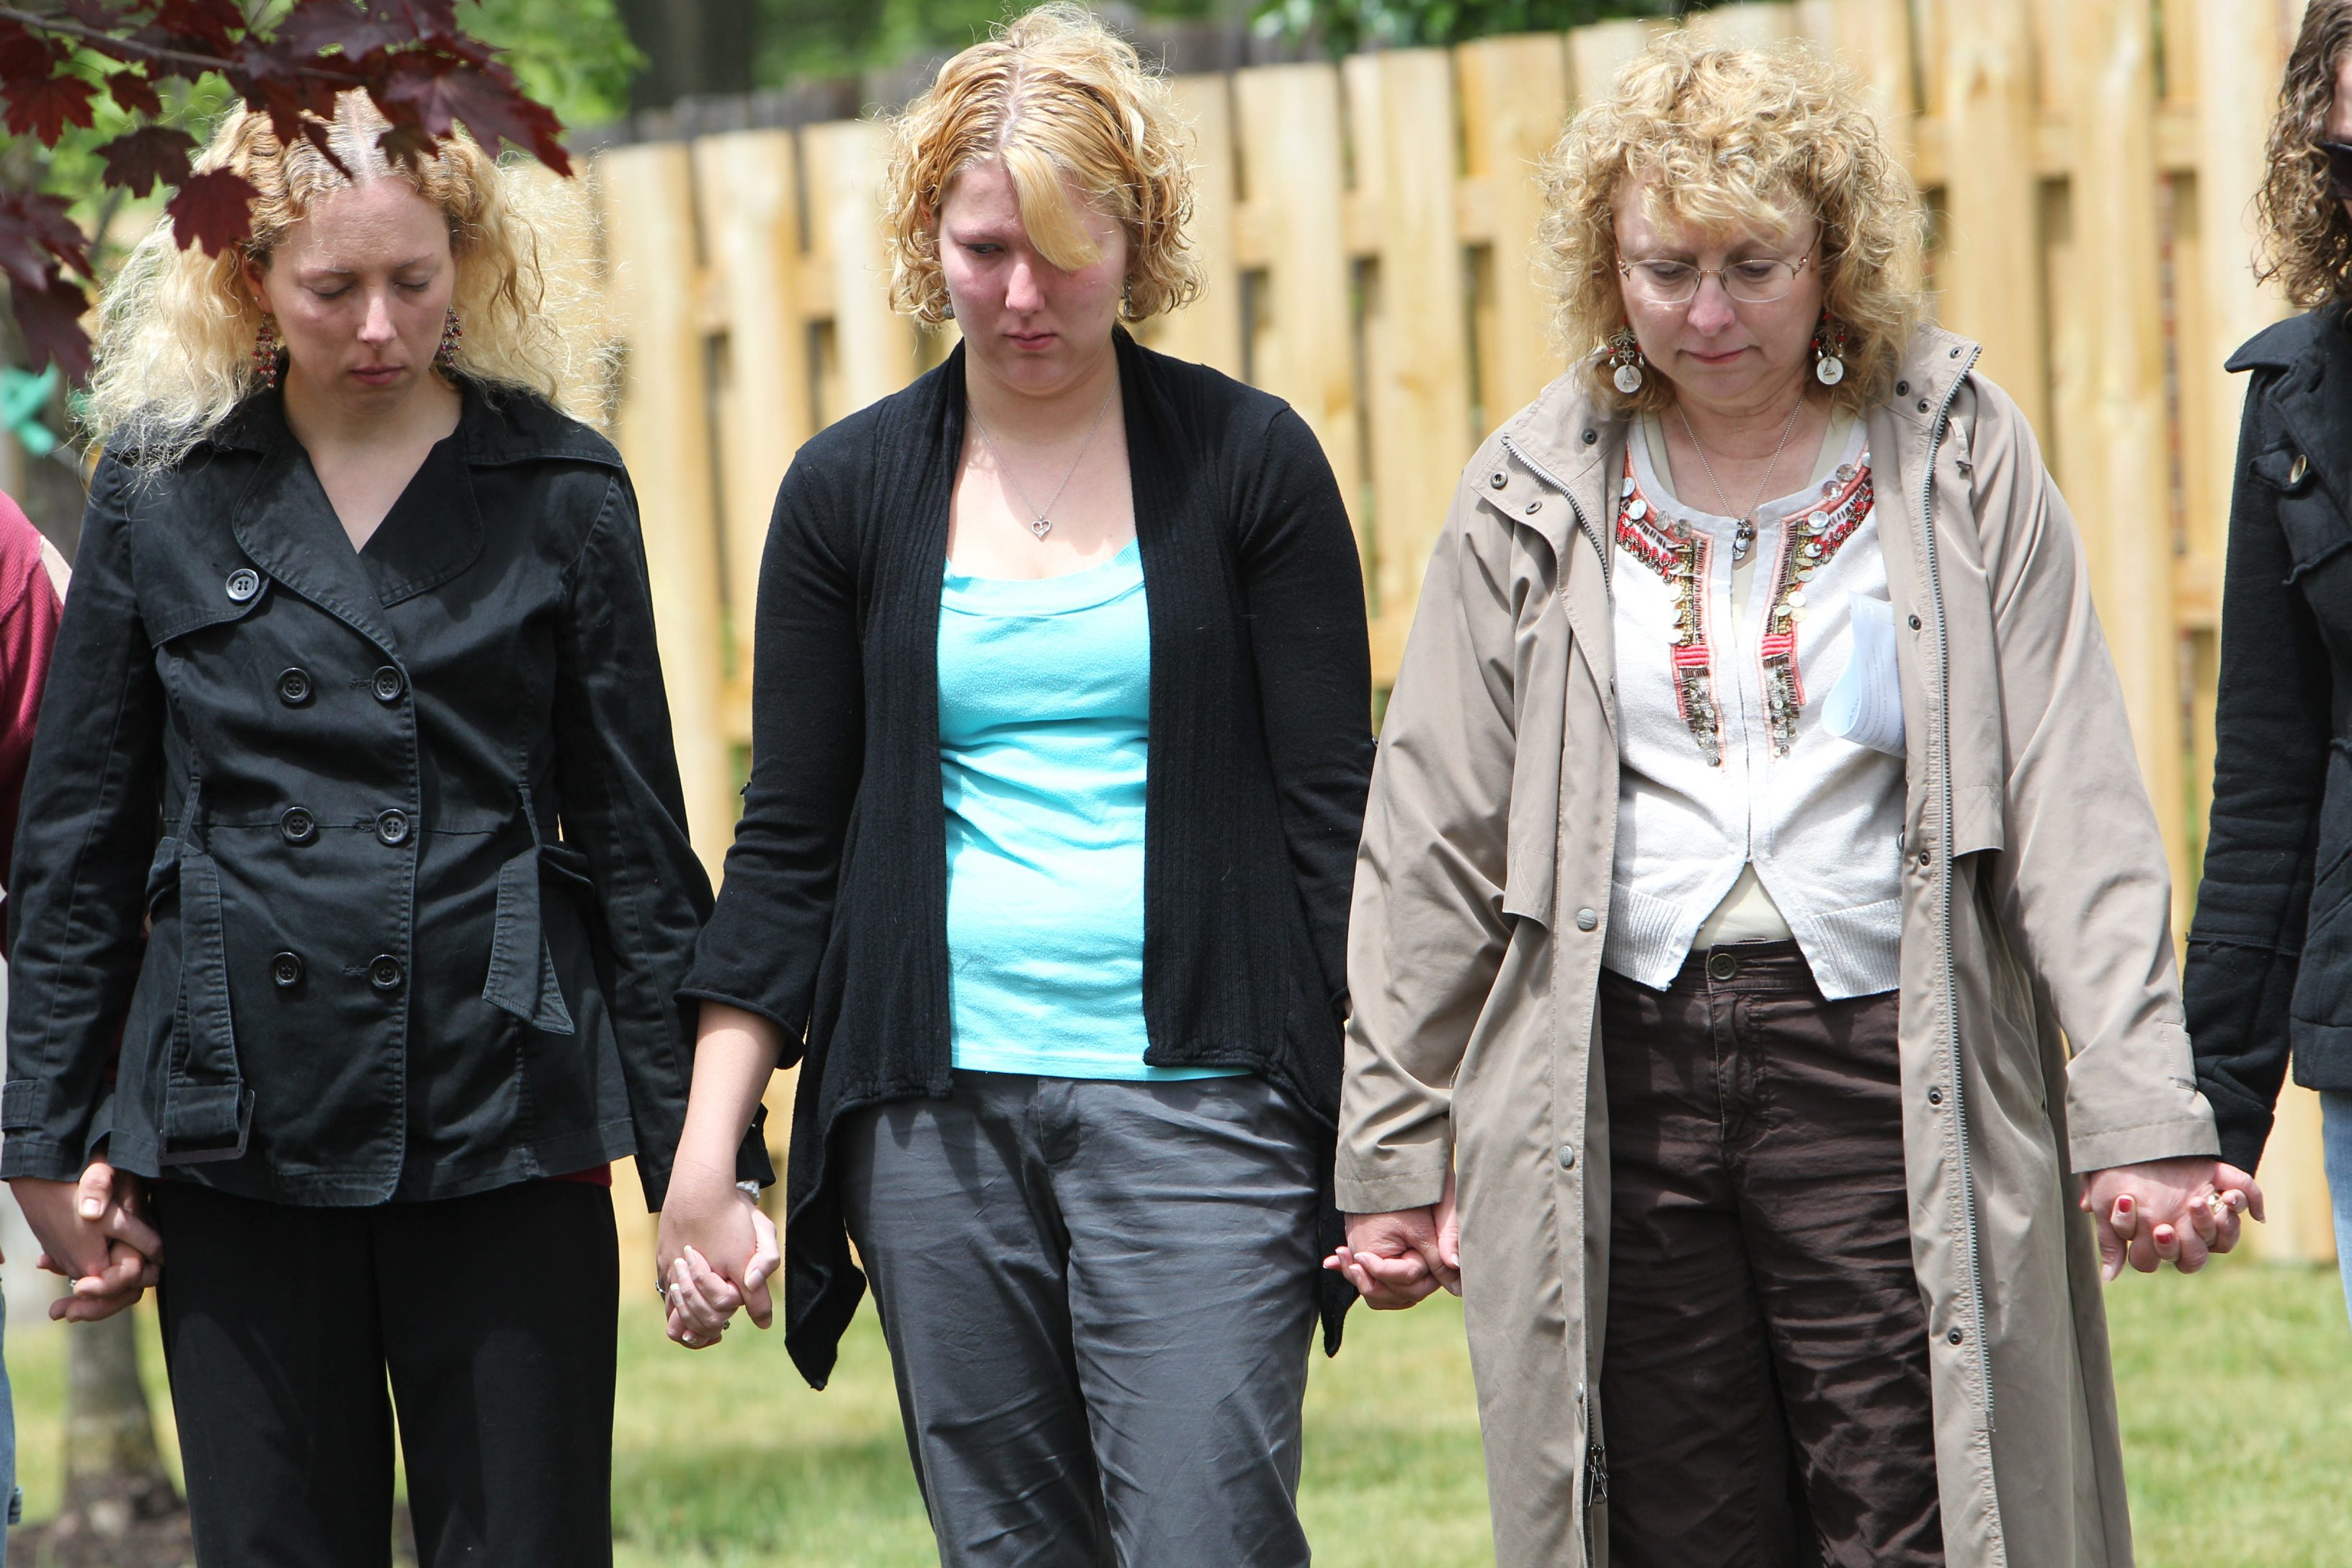 Kim Lipiarz, left, with her sister Jill and mother Kim Wielinski. Lipiarz was at the scene and saw the burning house after the crash of Flight 3407, and wasn't sure if any family members had survived. (Sharon Cantillon/Buffalo News file photo)